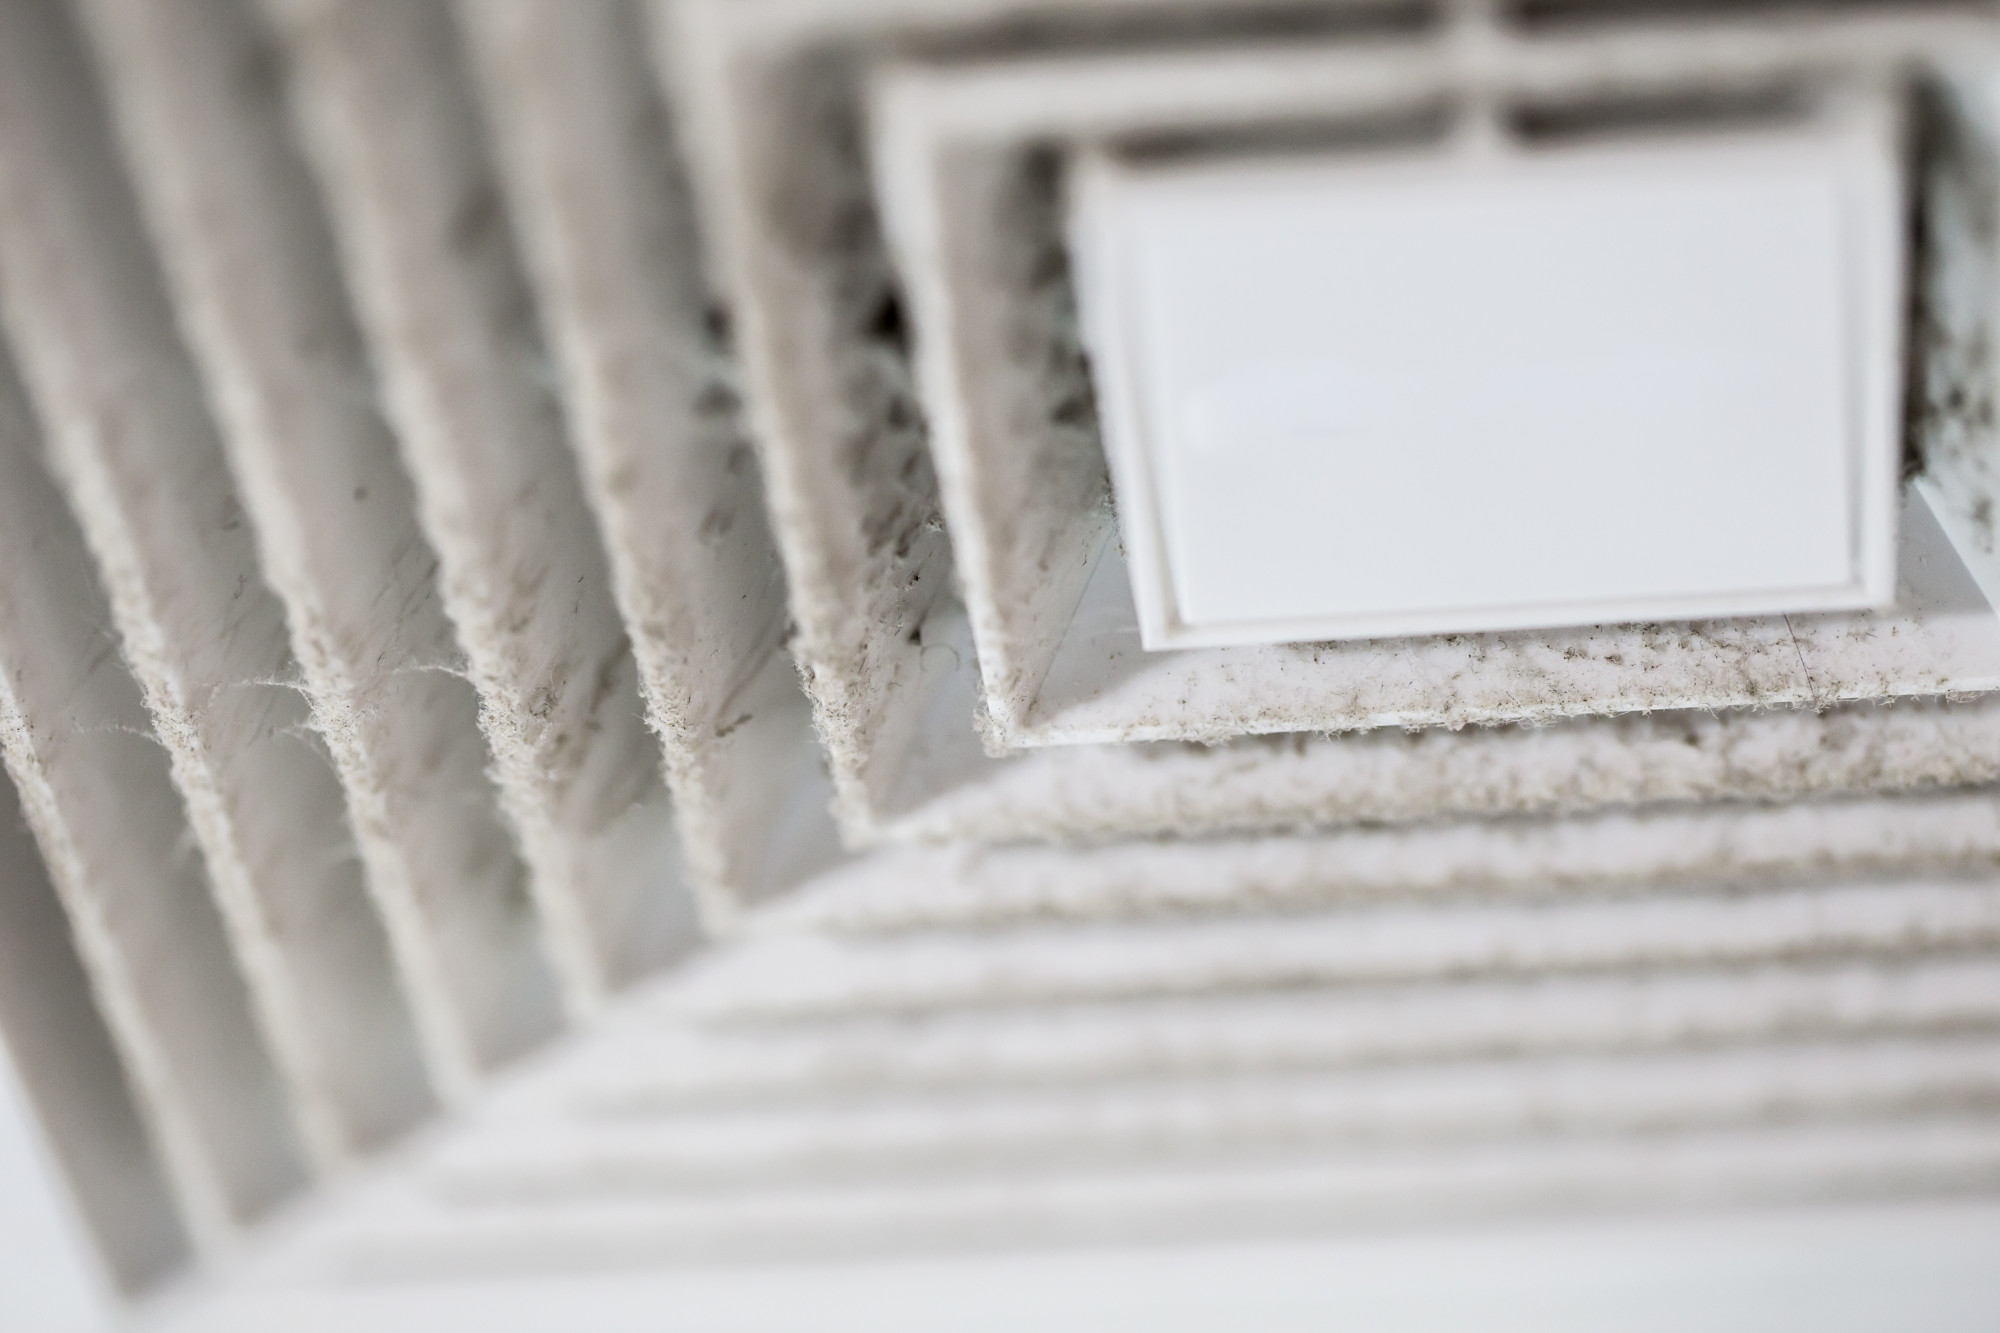 Dirty Air Ducts can cause Health Issues